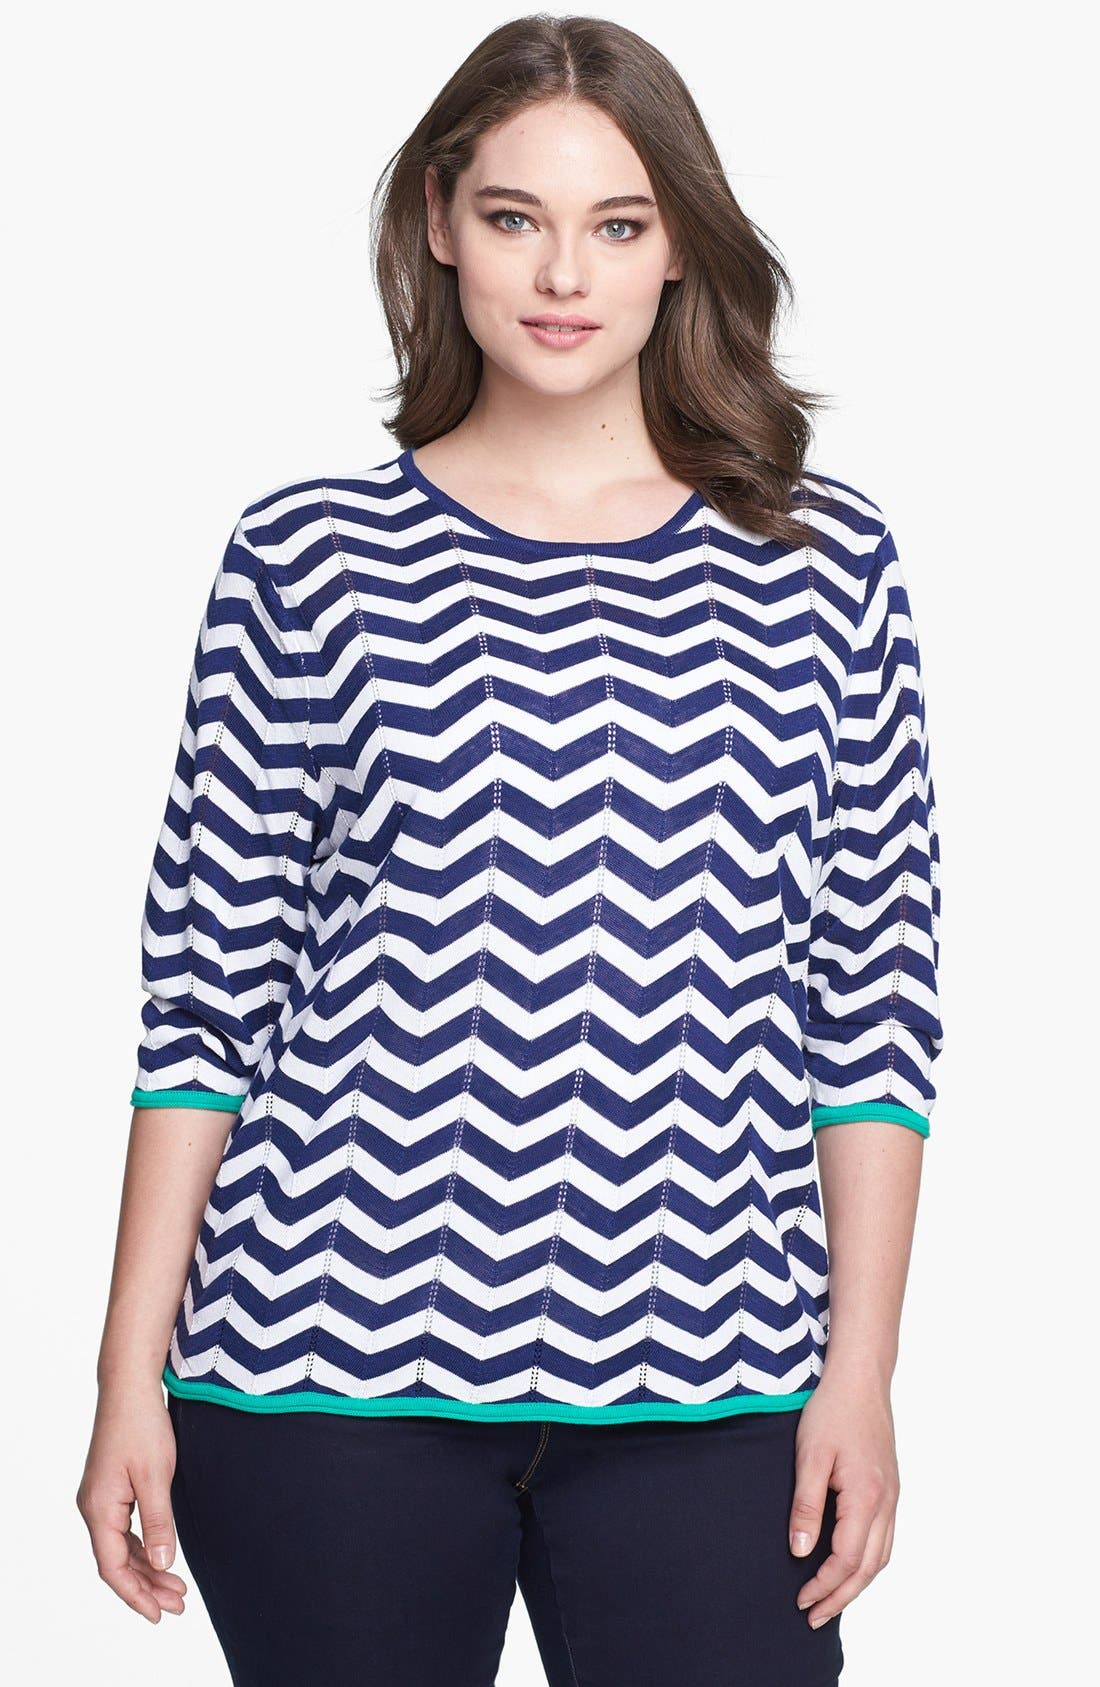 Alternate Image 1 Selected - Foxcroft Chevron Stripe Pullover Sweater (Plus Size)